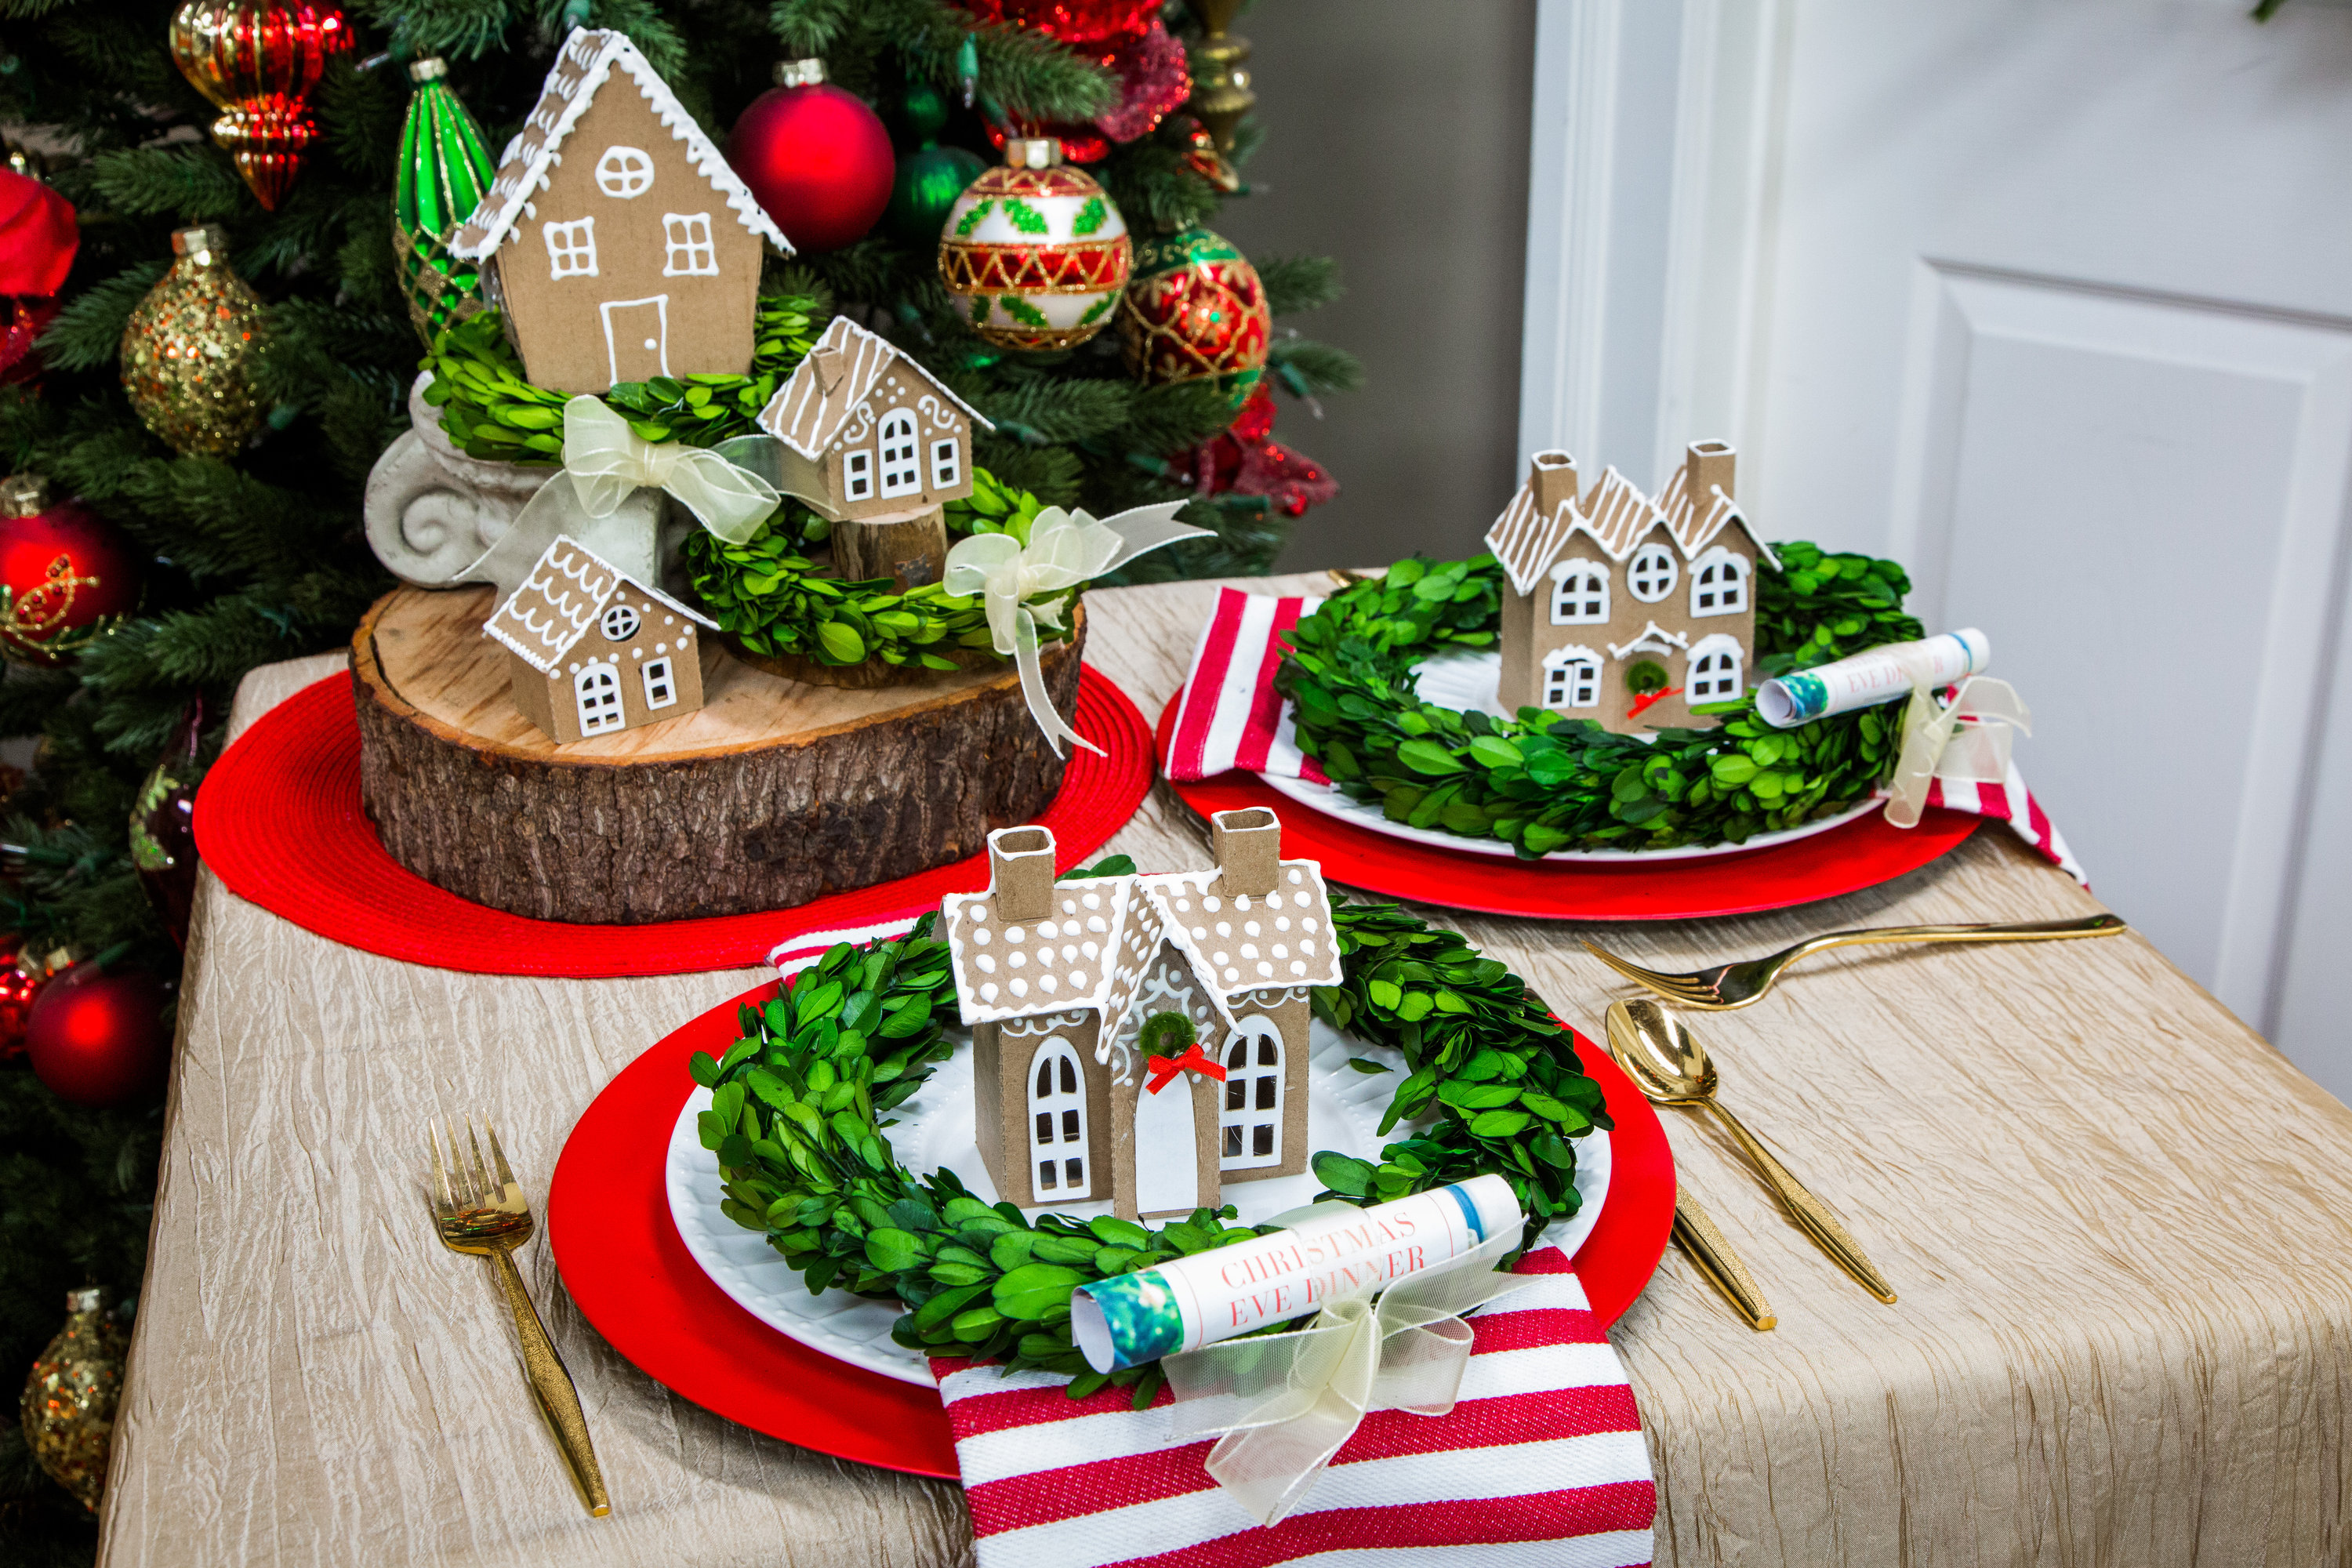 How To Diy Gingerbread House Place Settings Hallmark Channel